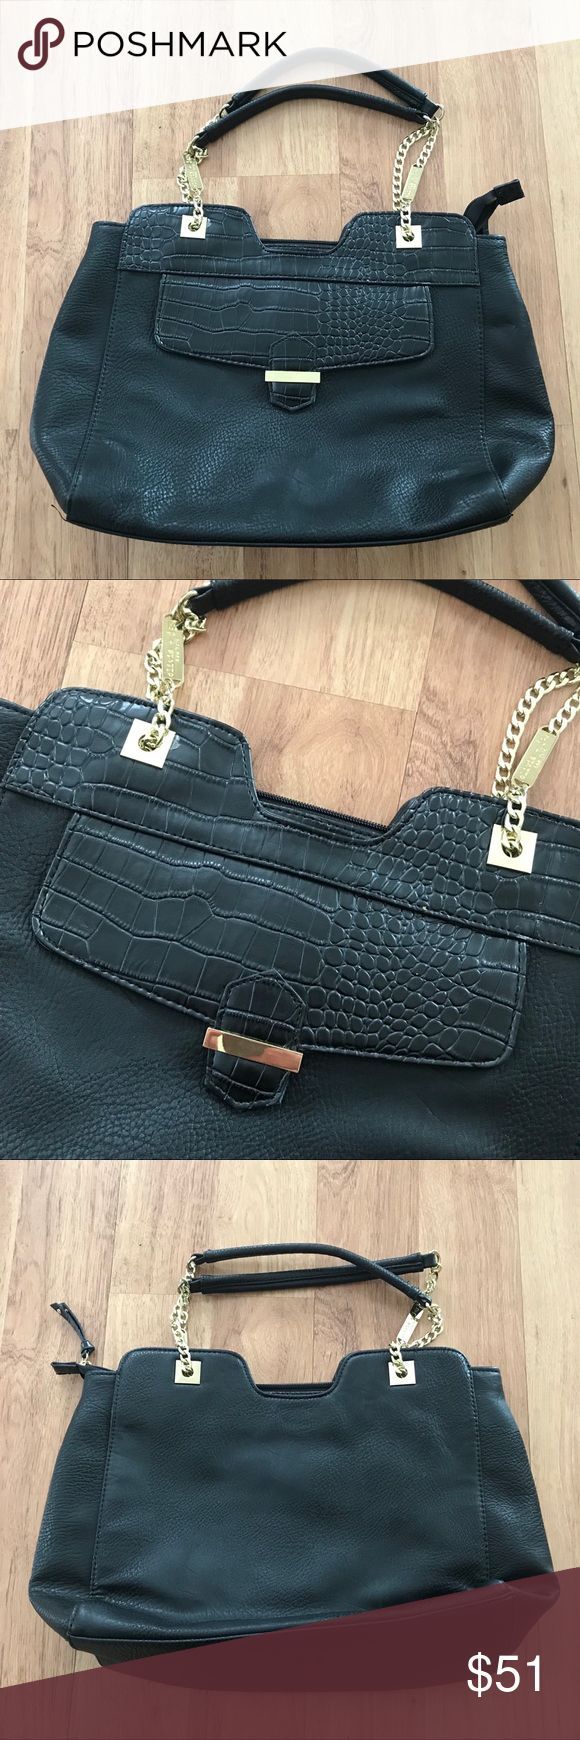 Olivia + Joy Black and Gold Large Tote Bag ⚜️I love receiving offers through the offer button!⚜️ Good condition, as seen in pictures! Fast same or next day shipping!📨 Open to offers but I don't negotiate in the comments so please use the offer button😊 Check out the rest of my closet for more Adidas, Lululemon, Tory Burch, Urban Outfitters, Free People, Anthropologie, Topshop, Asos, Revolve, Zara, and American Apparel! Olivia + Joy Bags Totes